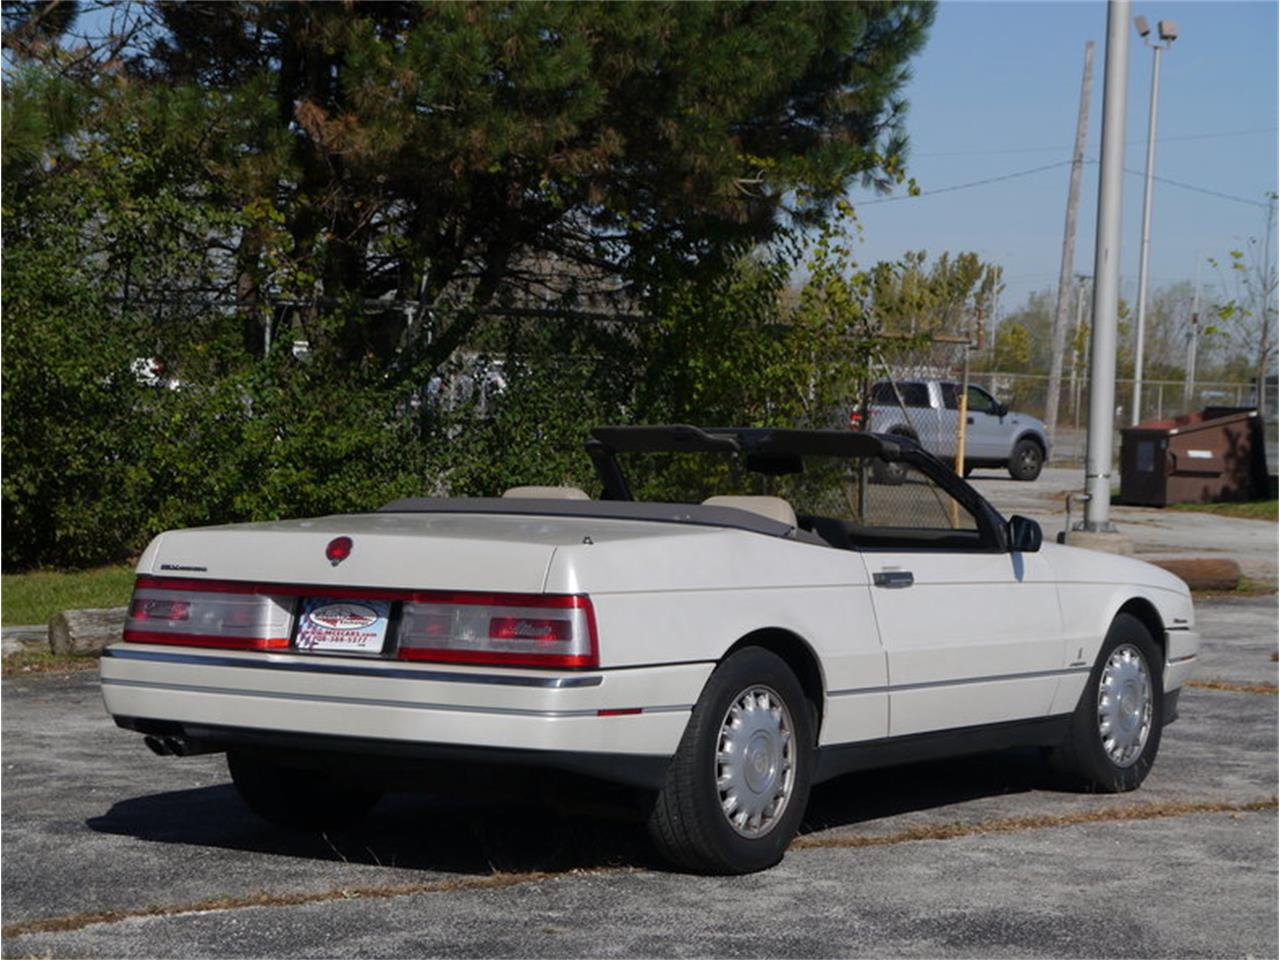 Large Picture of '93 Cadillac Allante located in Alsip Illinois - $14,900.00 Offered by Midwest Car Exchange - MD78